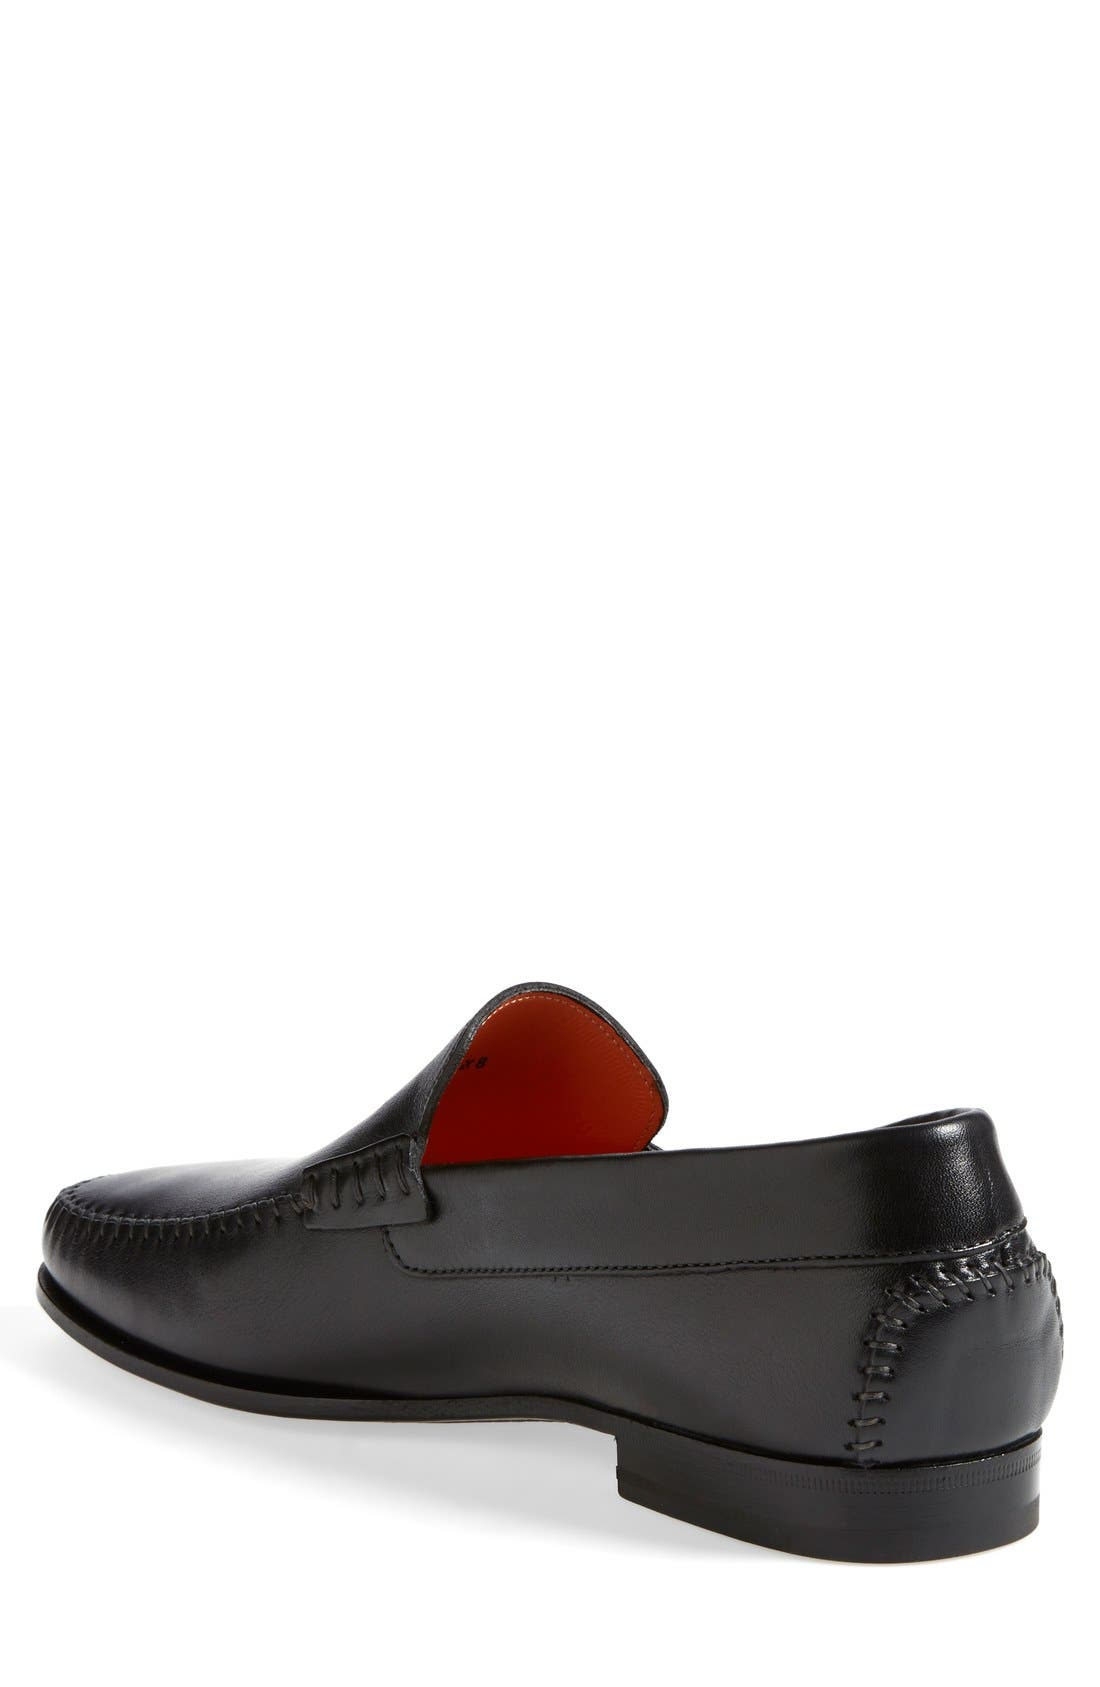 'Auburn' Venetian Loafer,                             Alternate thumbnail 3, color,